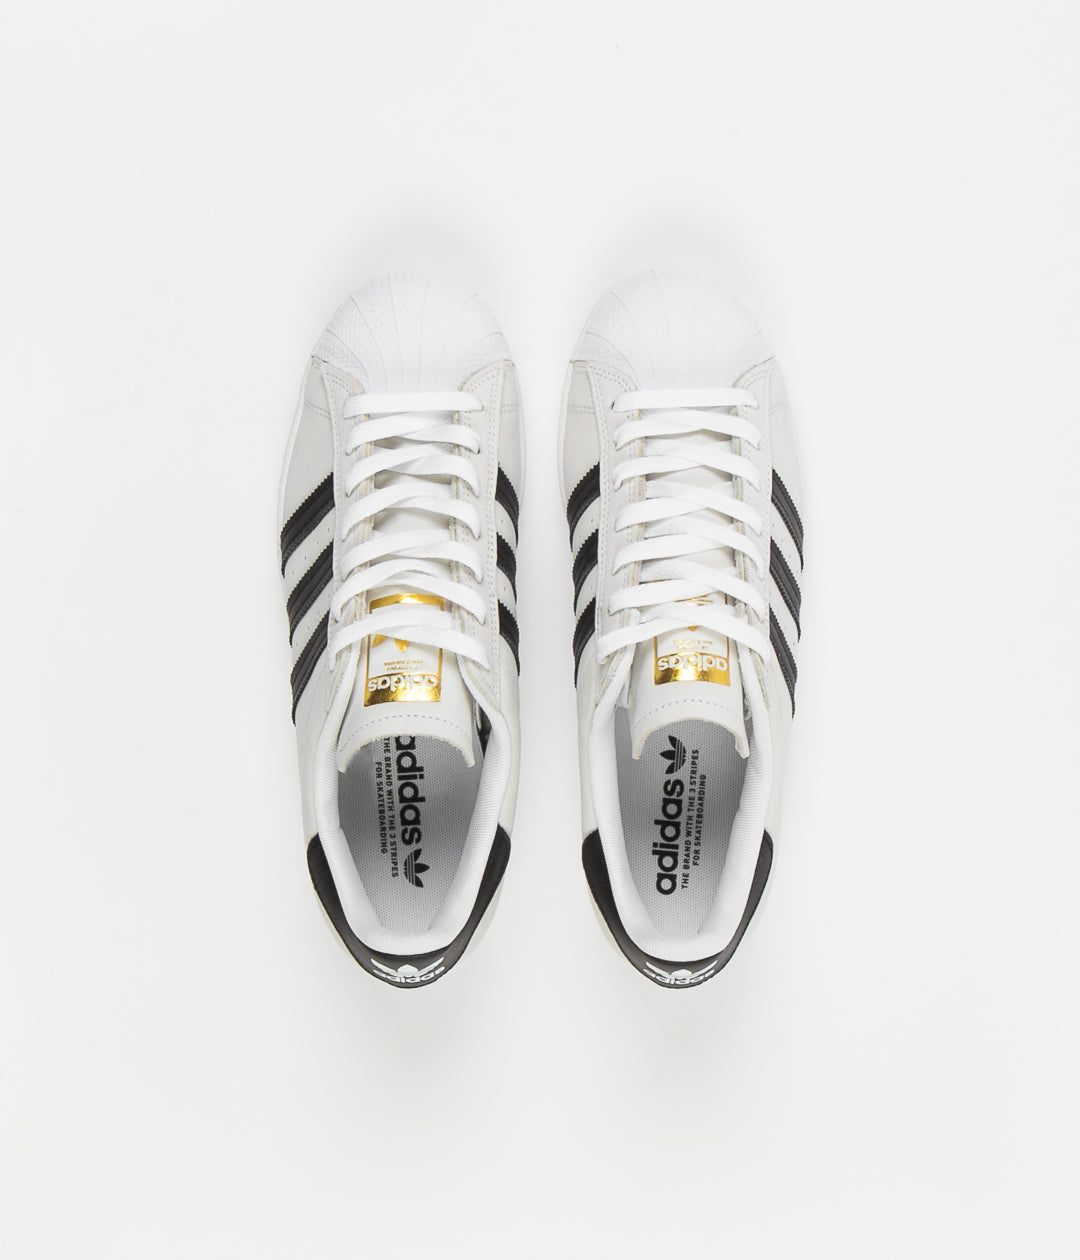 adidas superstar shoes gold and white